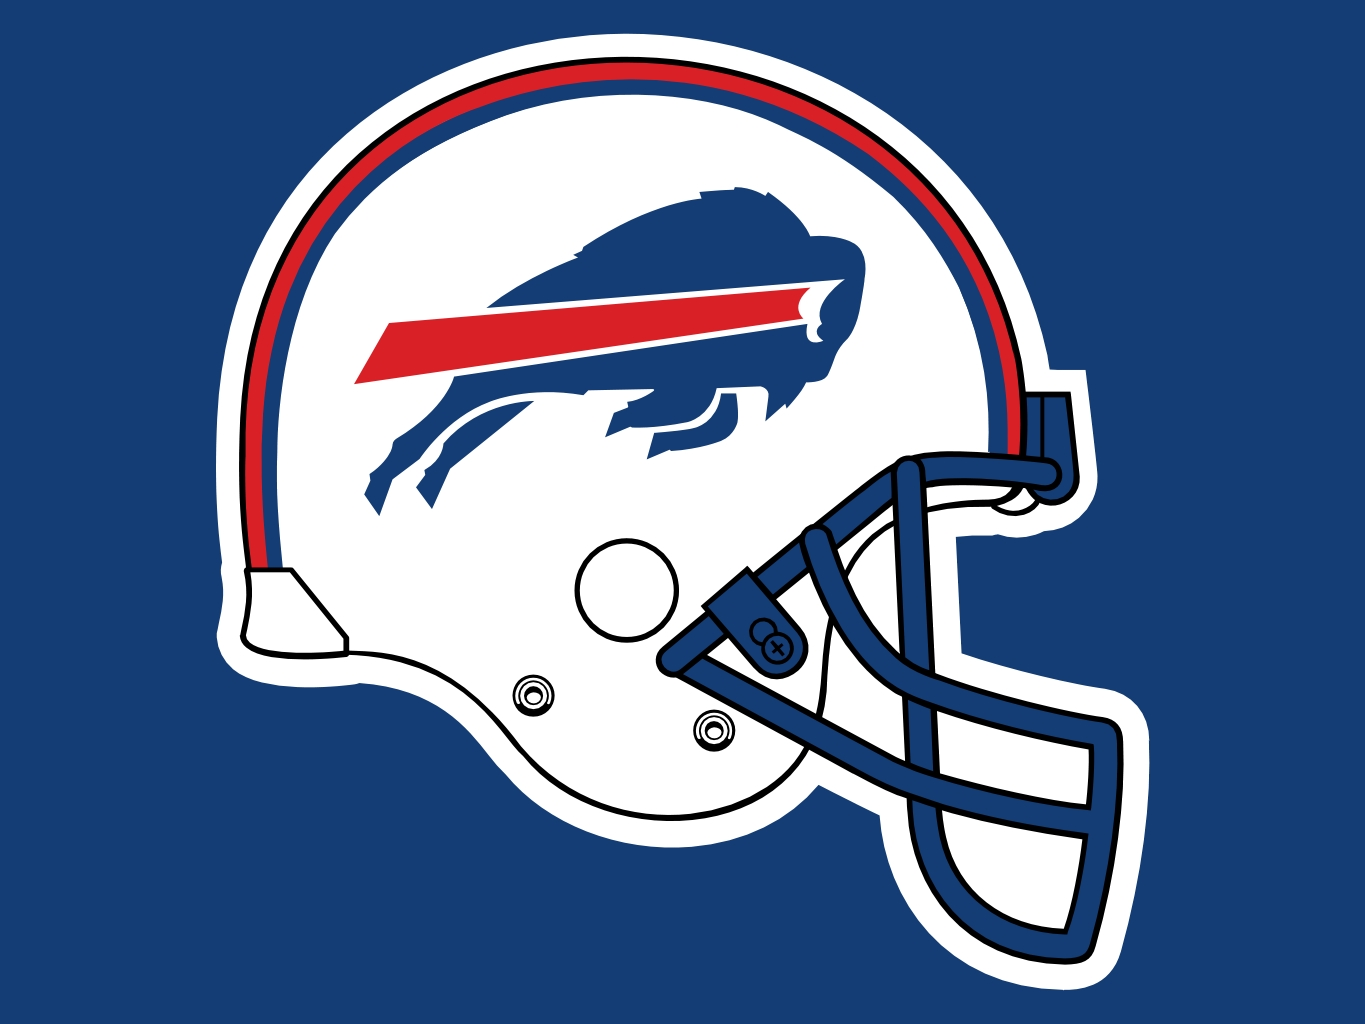 NFL Team Logos   Photo 42 of 416 phombocom 1365x1024